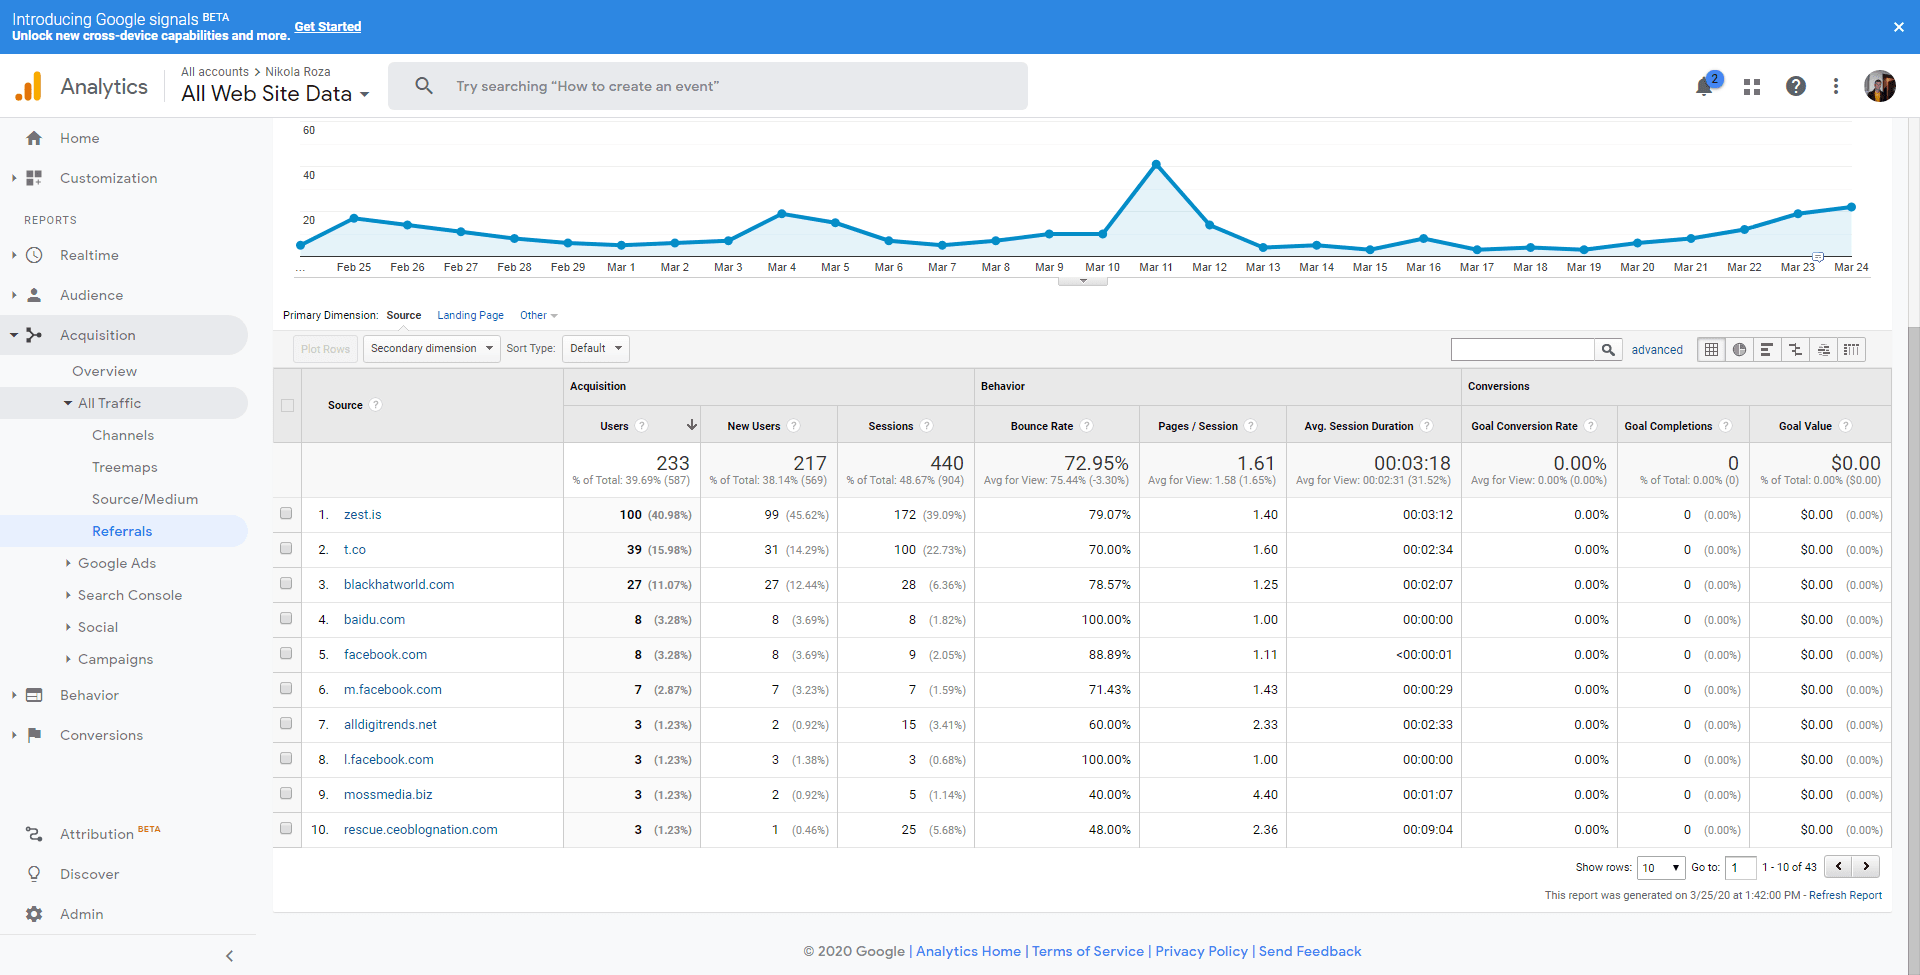 Referral sources in Google Analytics